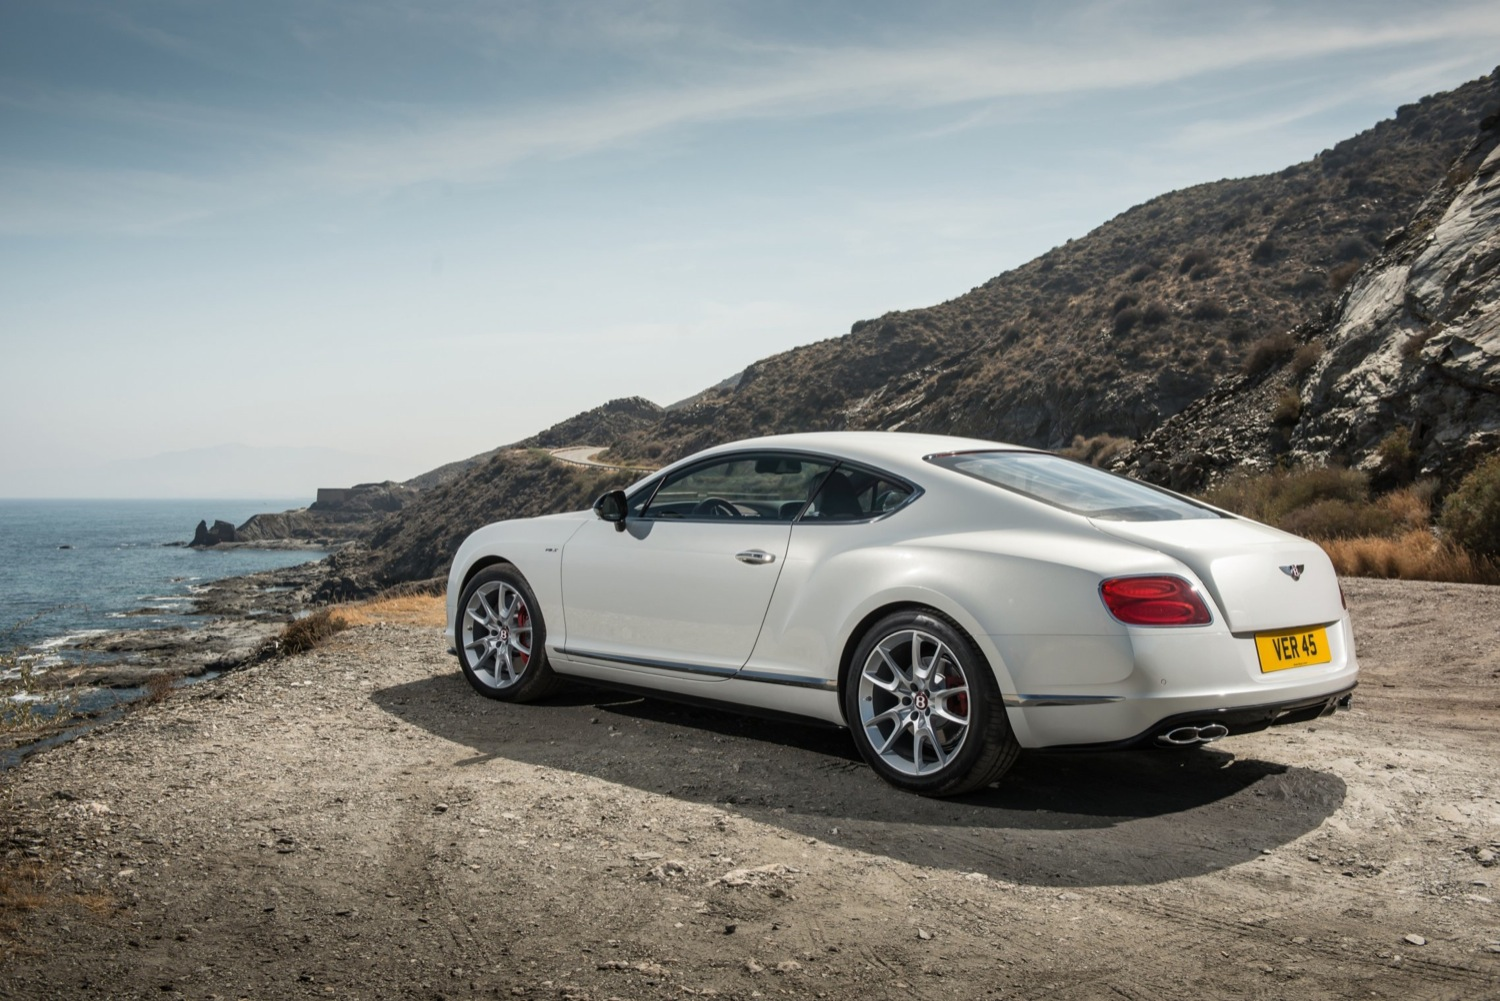 2014 bentley continental gt v8 s motrolix 2014 bentley continental gt v8 s coupe 02 vanachro Image collections